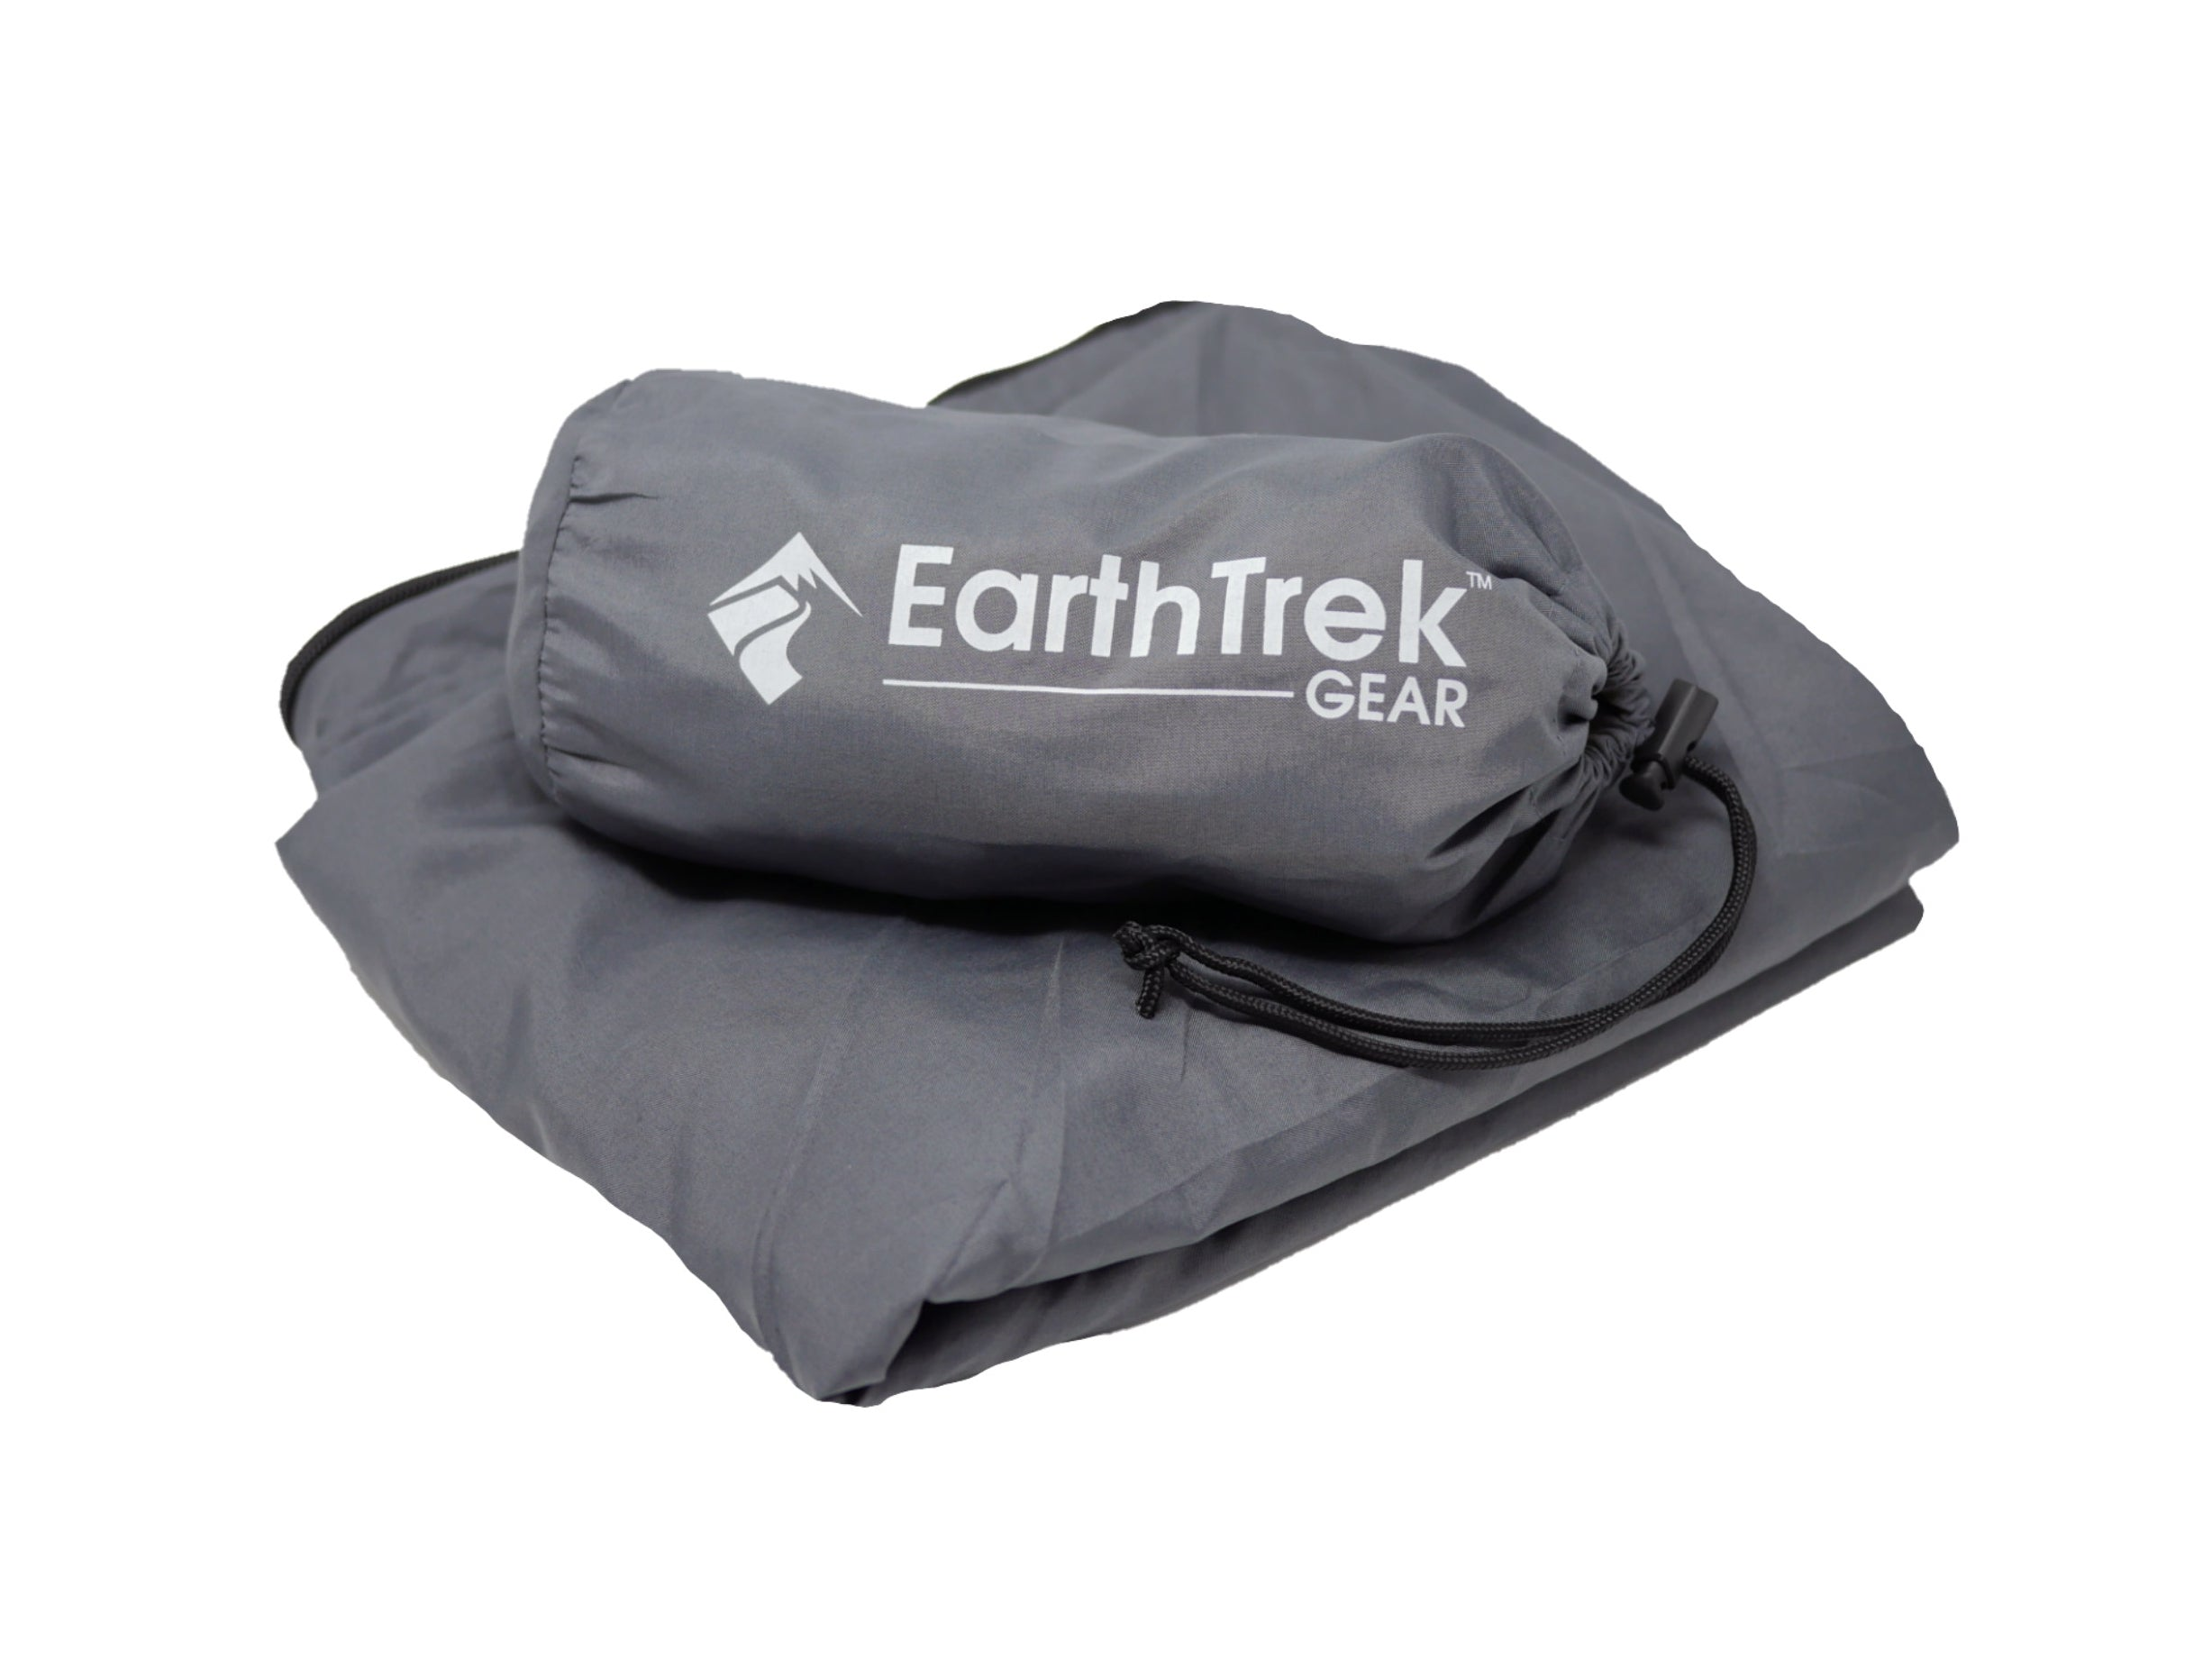 EarthTrek Jumbo Sleeping Bag Liner and Travel Blanket Combo Double Pack 2 Set